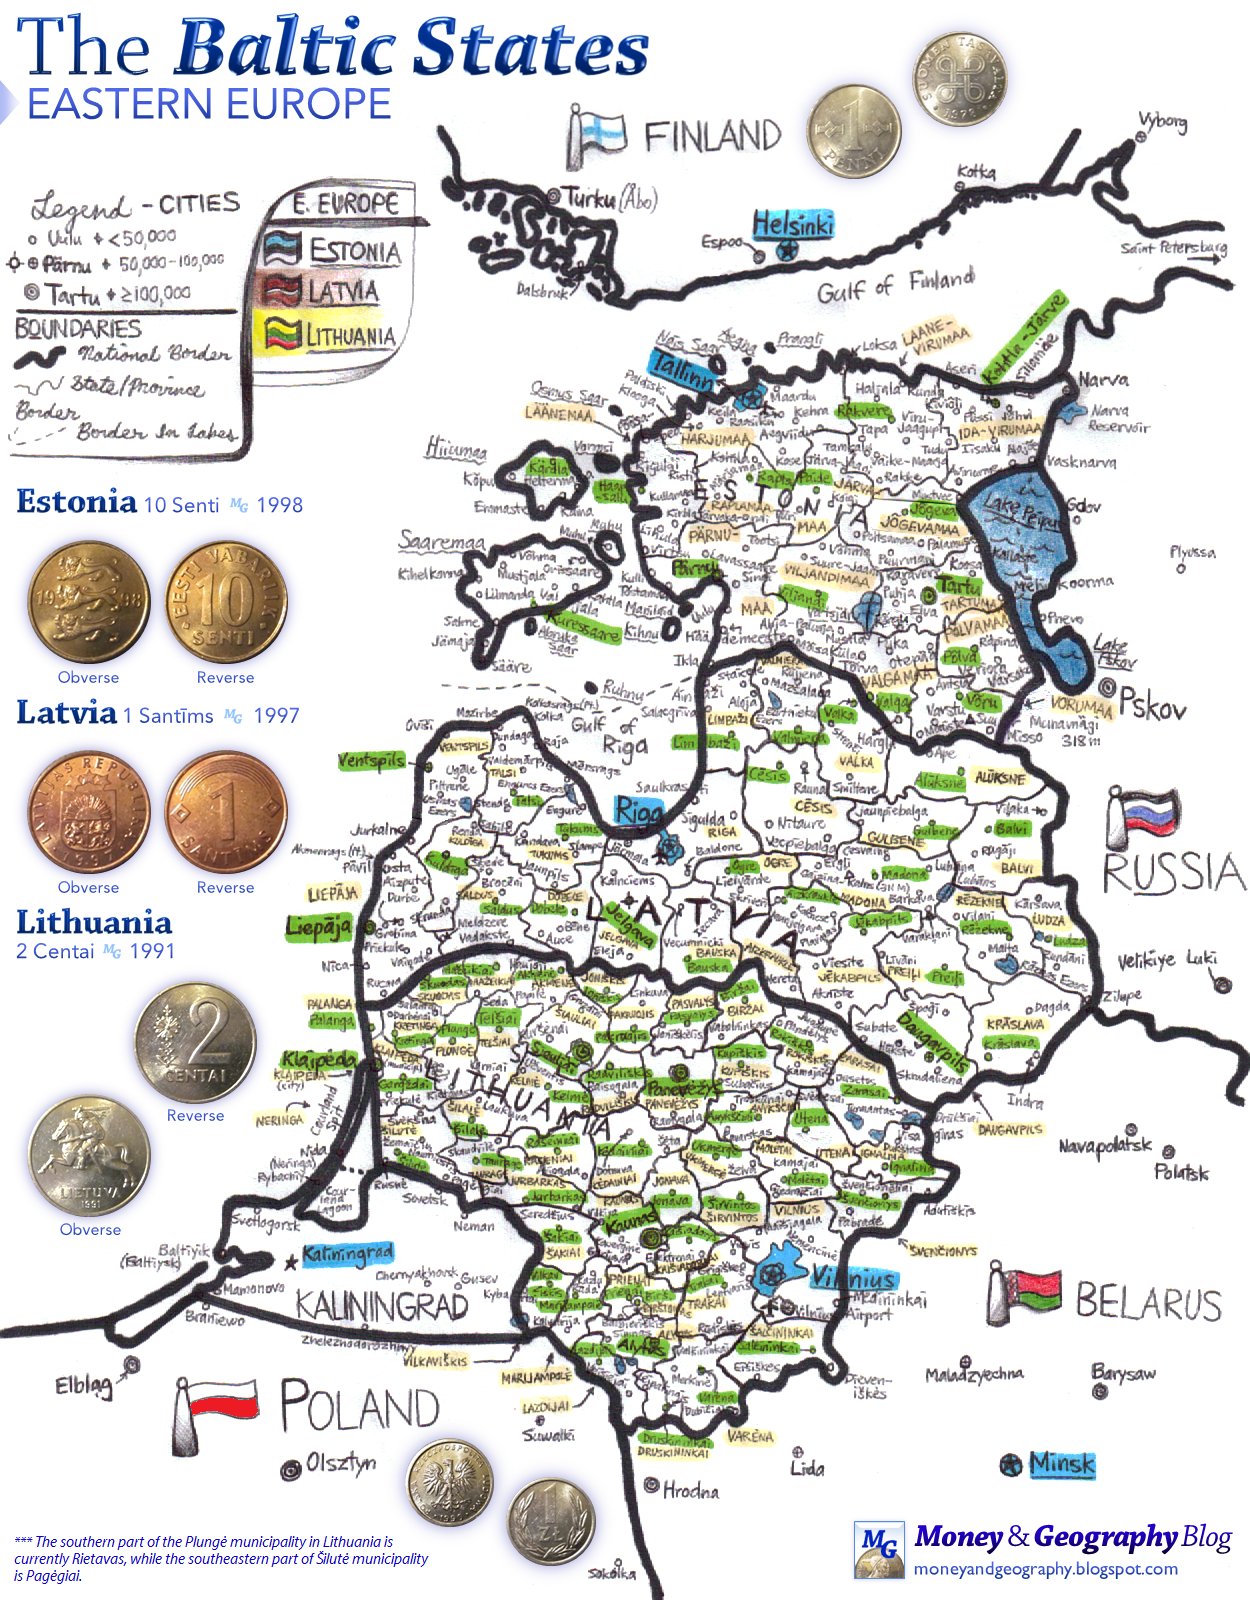 Detailed information about Lithuania, politics, geography and history